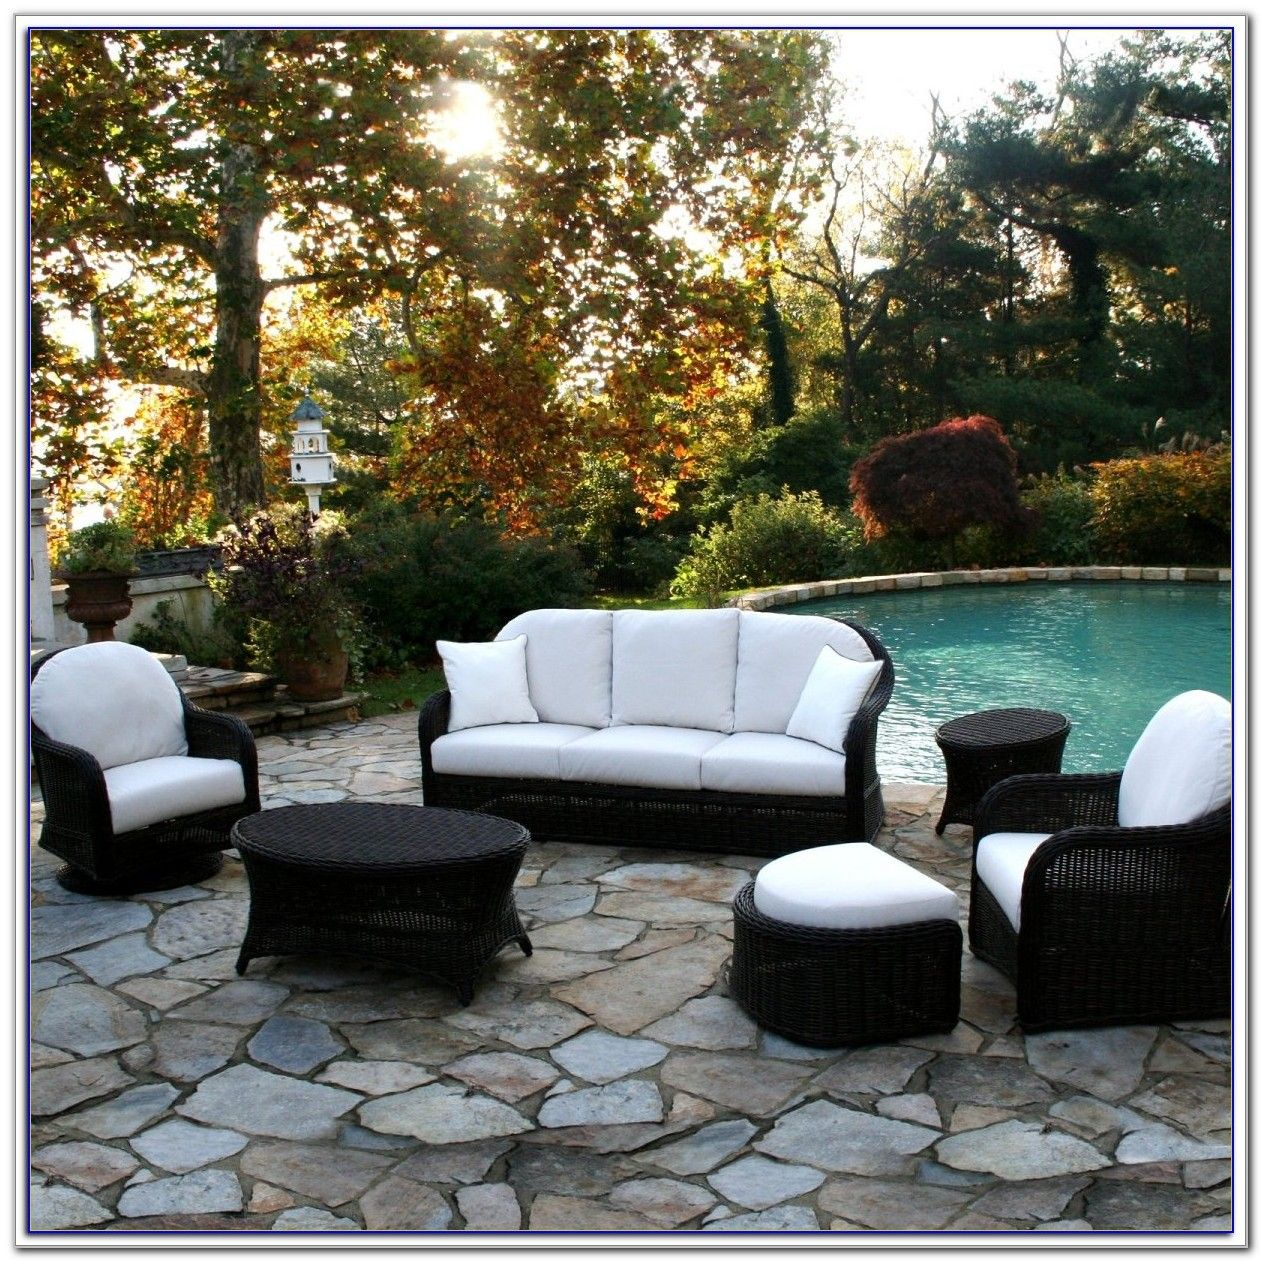 Patio Furniture Refinishing Fort Lauderdale: Carls Patio Furniture Fort Lauderdale